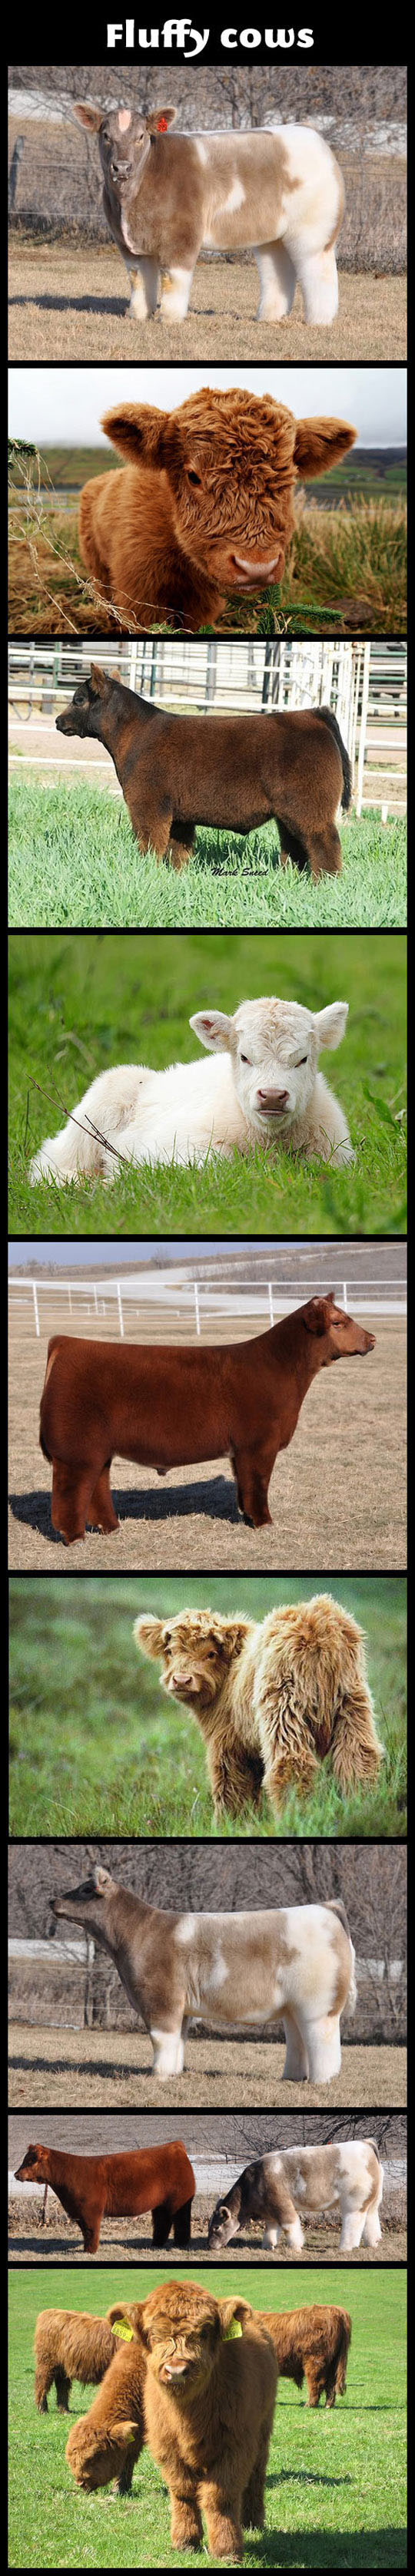 Cow Fluffiness